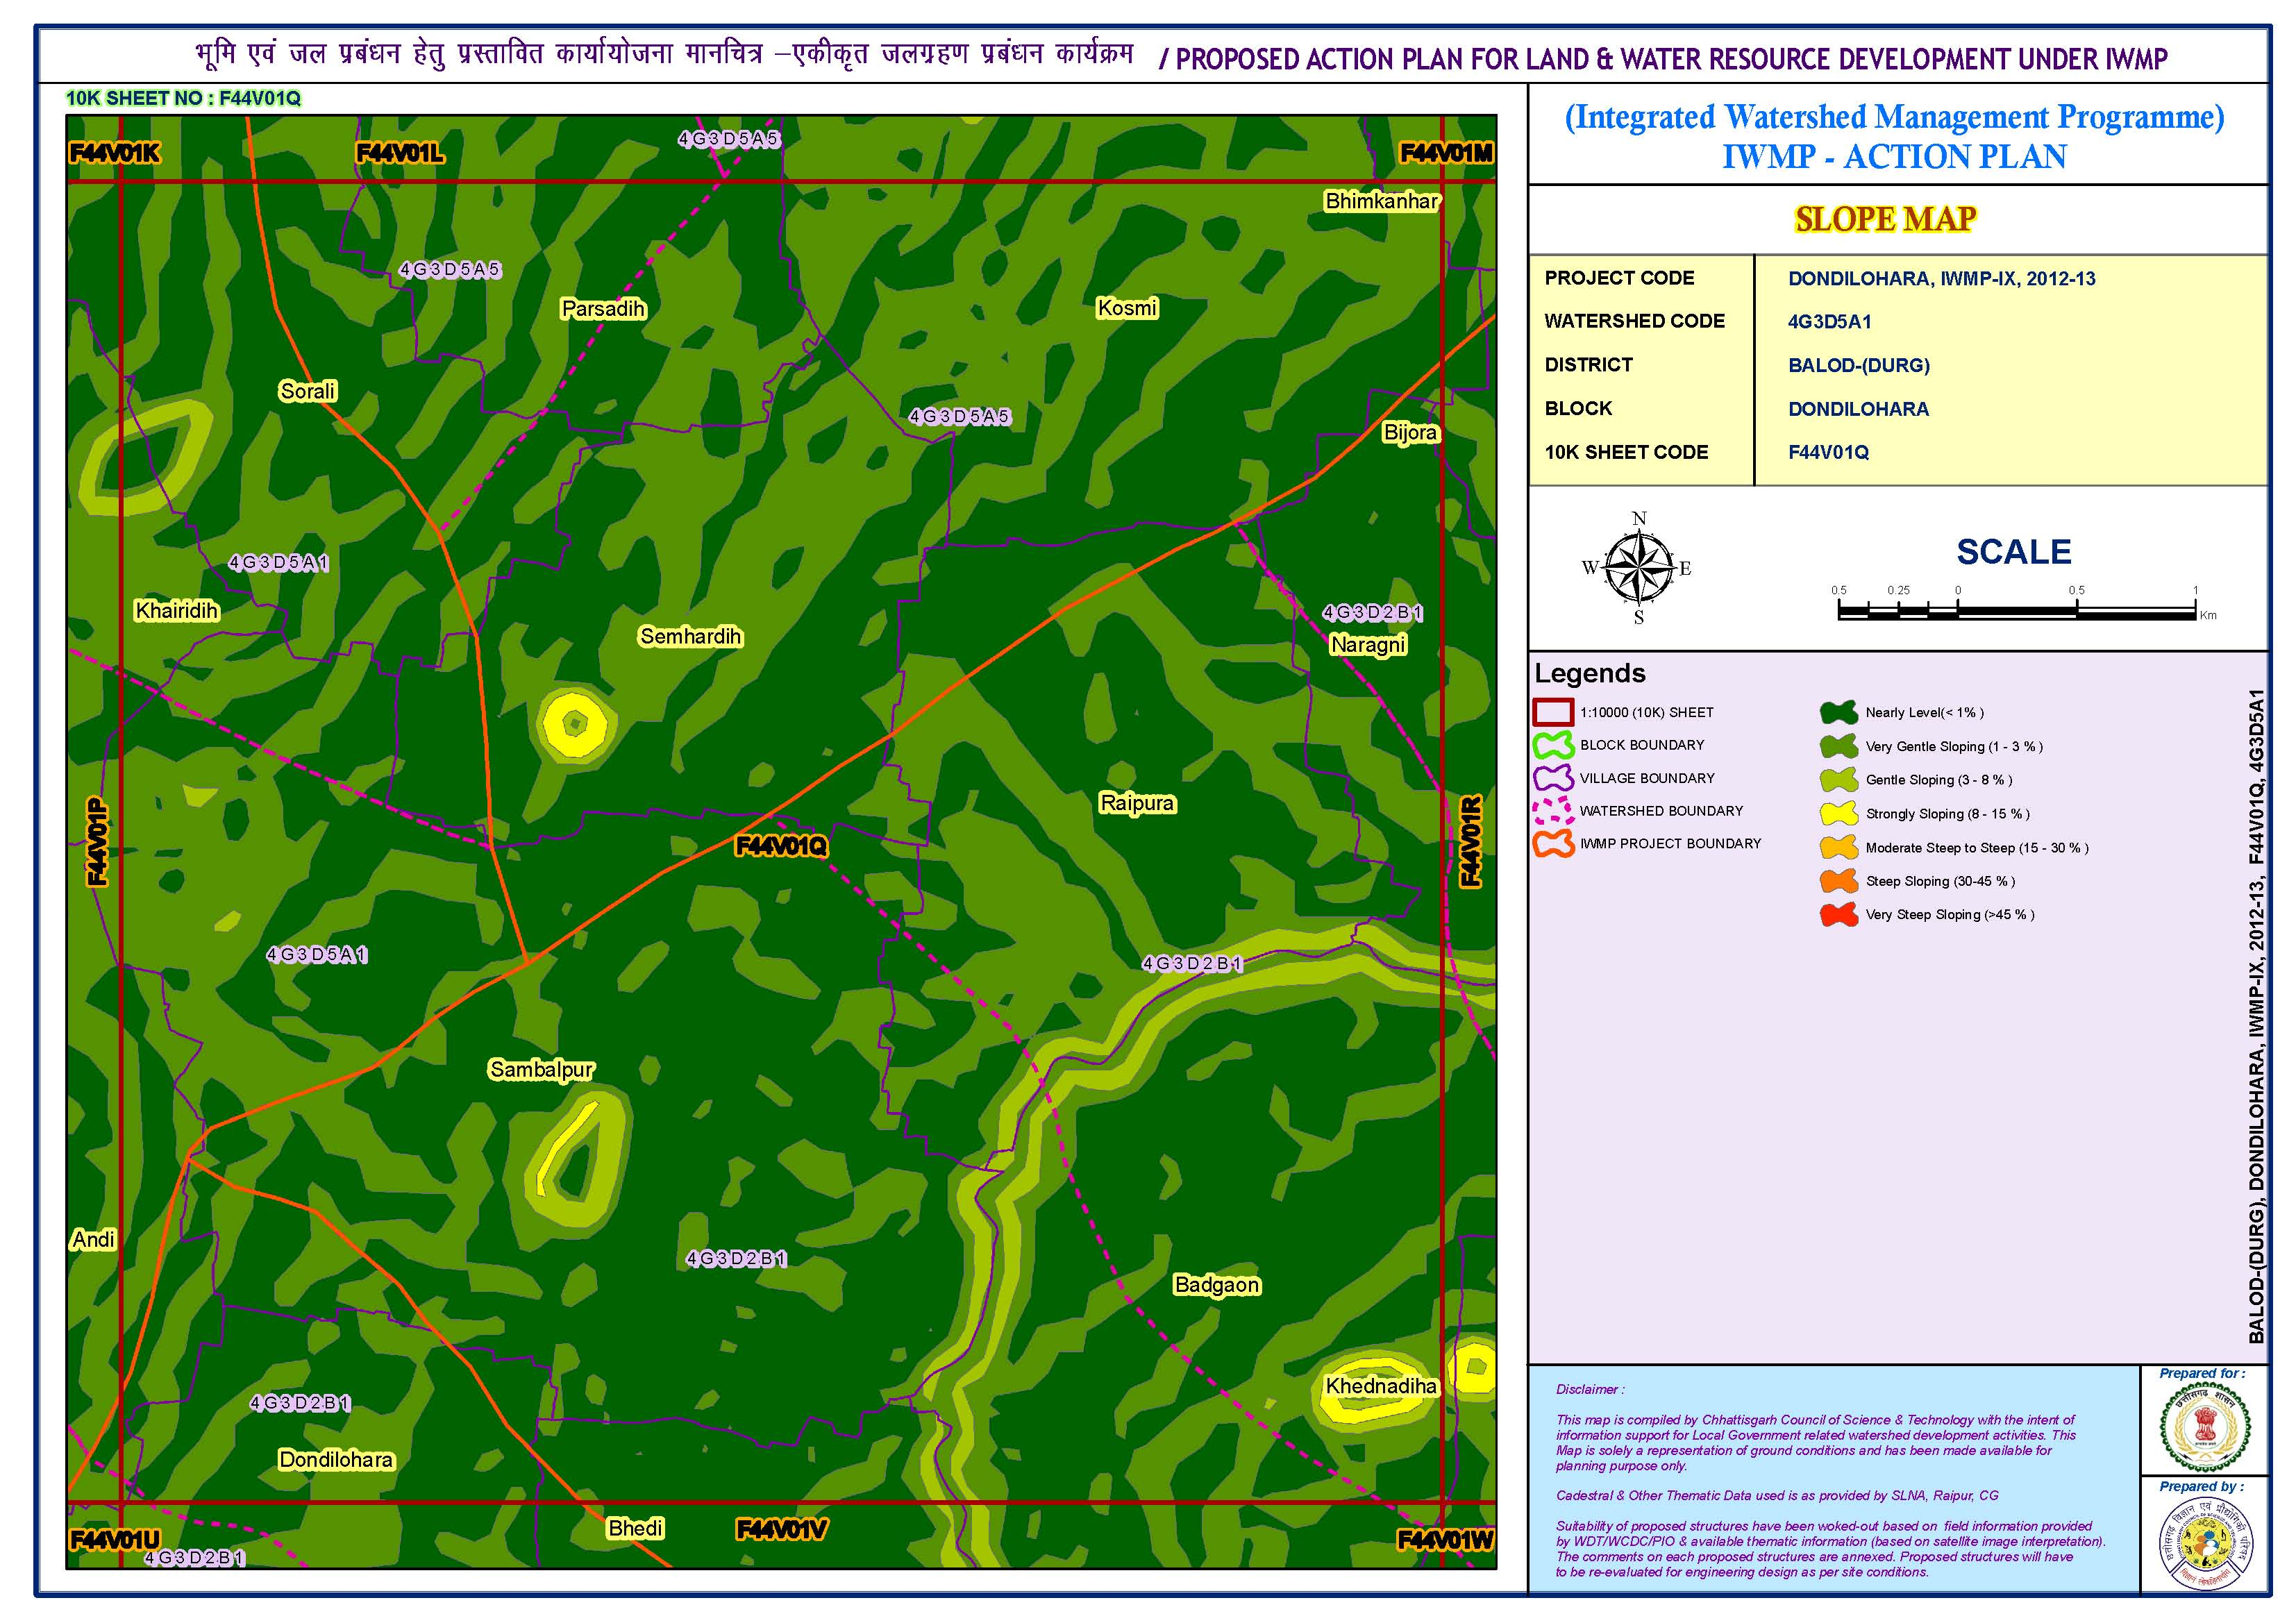 Proposed action plan for land and water resource development (Slope map)